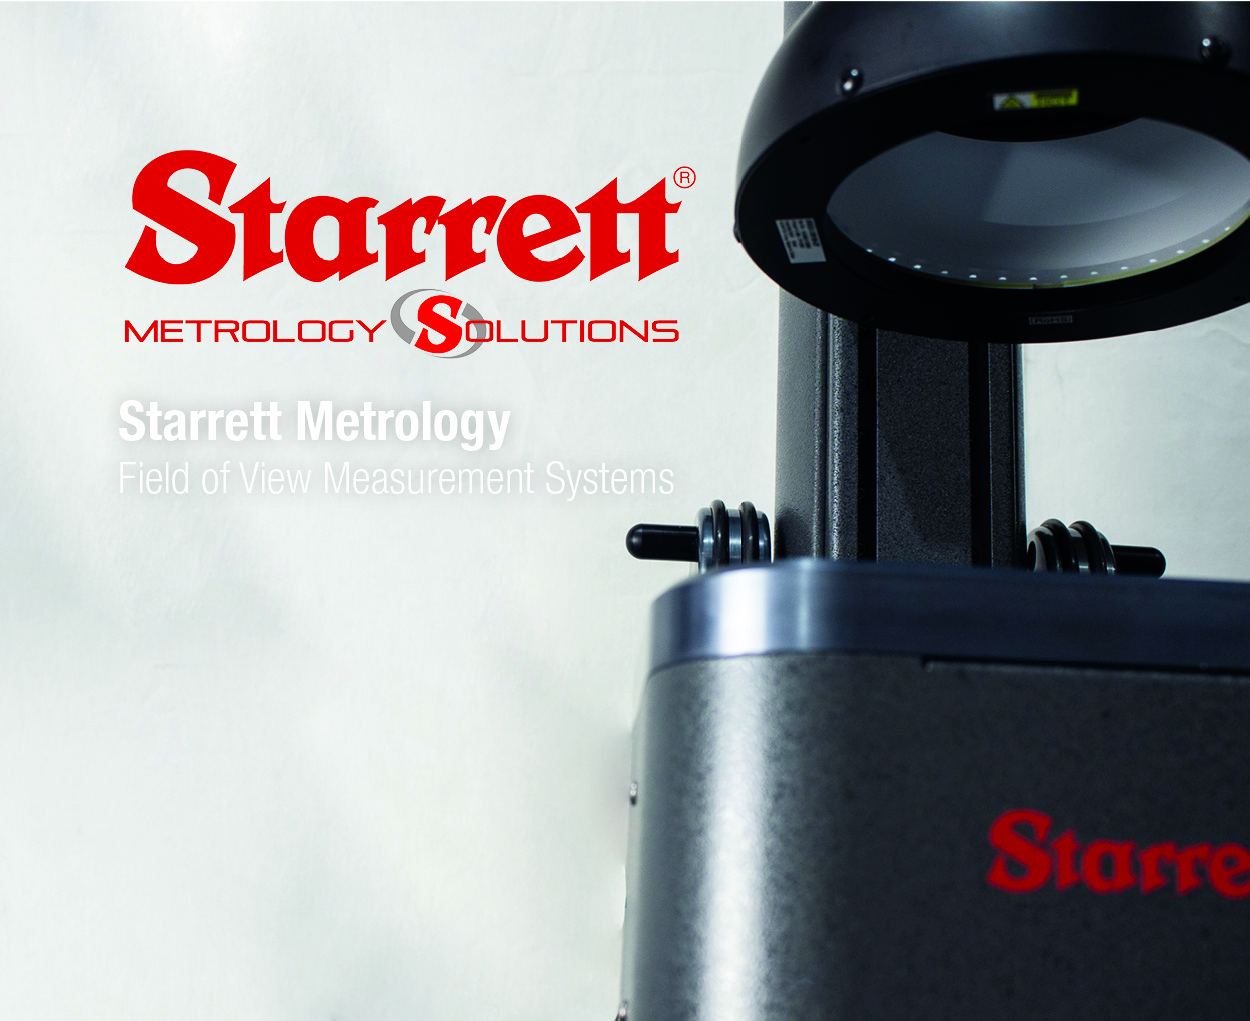 1701, 1701, Starrett KMR-FOV graphic, Field-of-View-Systems_c4200d02e88e69e99c29c5ad160cfbaa.jpg, 945418, https://starrett-metrology.co.uk/wp-content/uploads/2020/09/Field-of-View-Systems_c4200d02e88e69e99c29c5ad160cfbaa.jpg, https://starrett-metrology.co.uk/microscope-measurement-made-easy-with-starrett-field-of-view/field-of-view-systems_c4200d02e88e69e99c29c5ad160cfbaa/, Starrett KMR-FOV graphic, 5, Starrett KMR-FOV graphic, , field-of-view-systems_c4200d02e88e69e99c29c5ad160cfbaa, inherit, 1393, 2020-09-23 08:26:22, 2020-10-01 15:51:01, 0, image/jpeg, image, jpeg, https://starrett-metrology.co.uk/wp-includes/images/media/default.png, 1250, 1021, Array